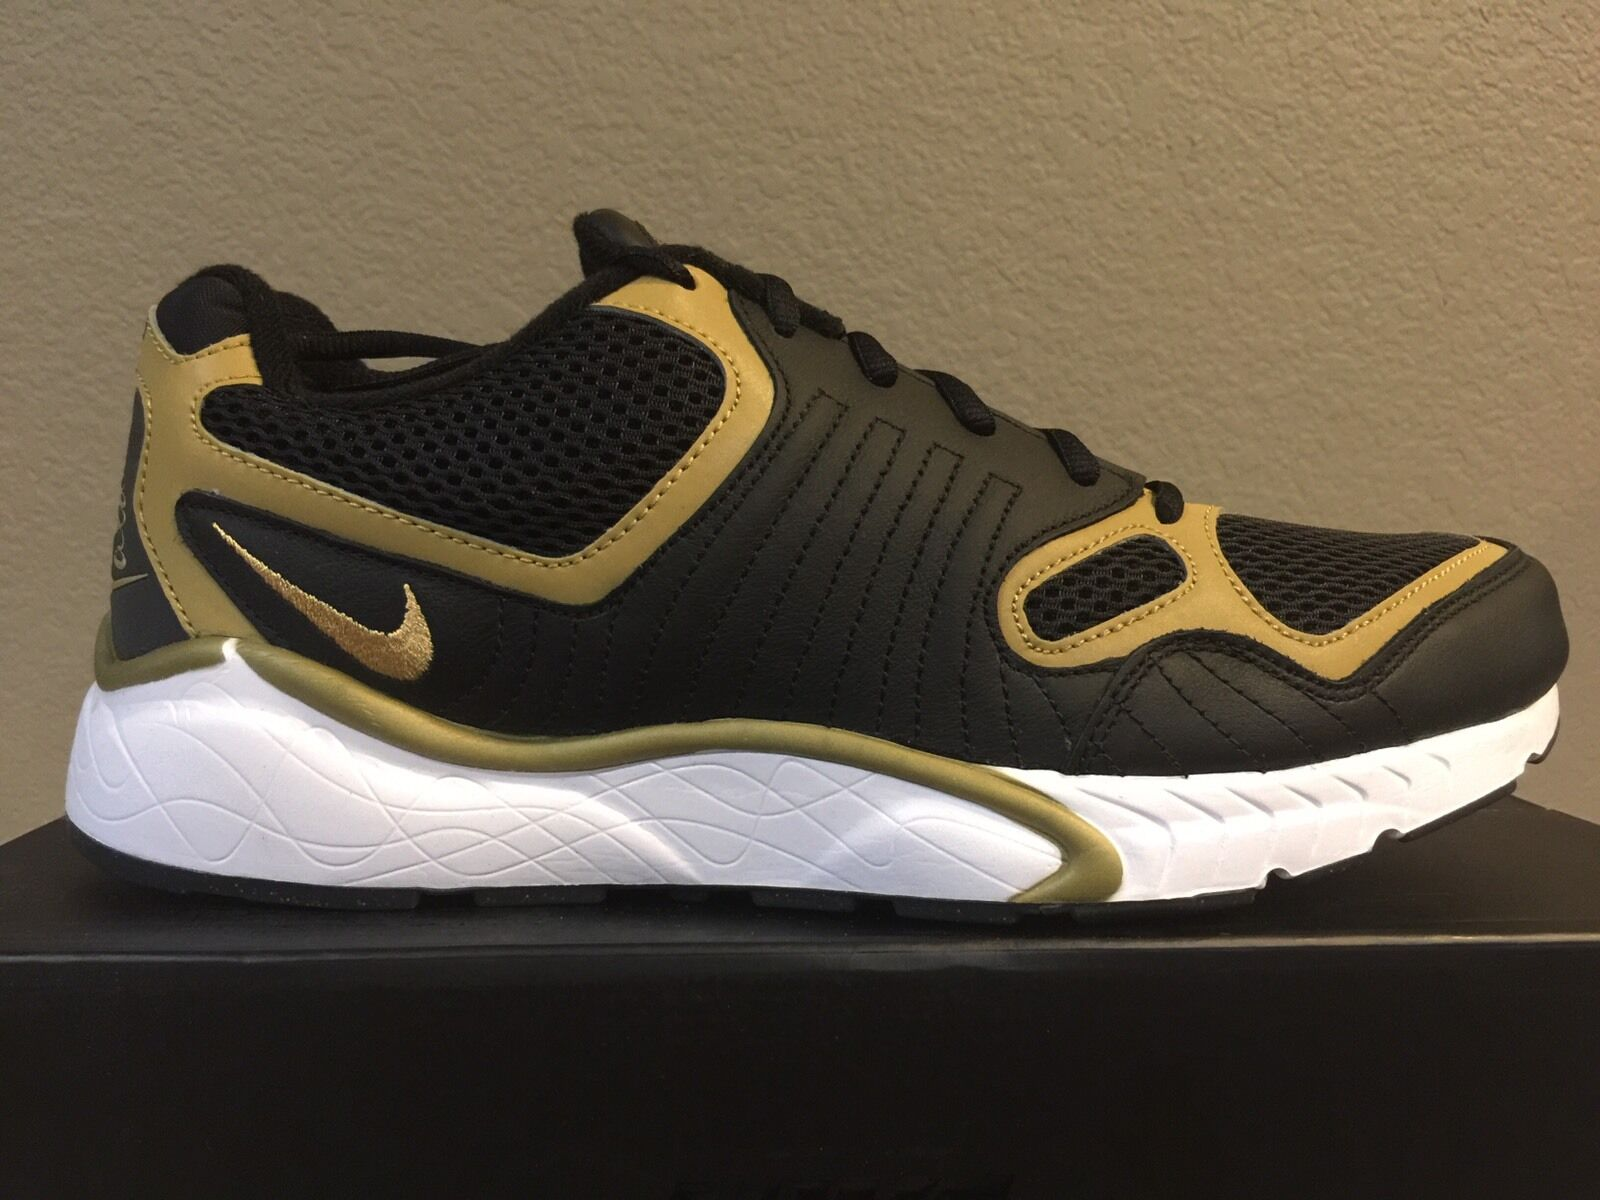 Nike Air Zoom Talaria '16 [844695 077] Black/metallic Gold Size 10